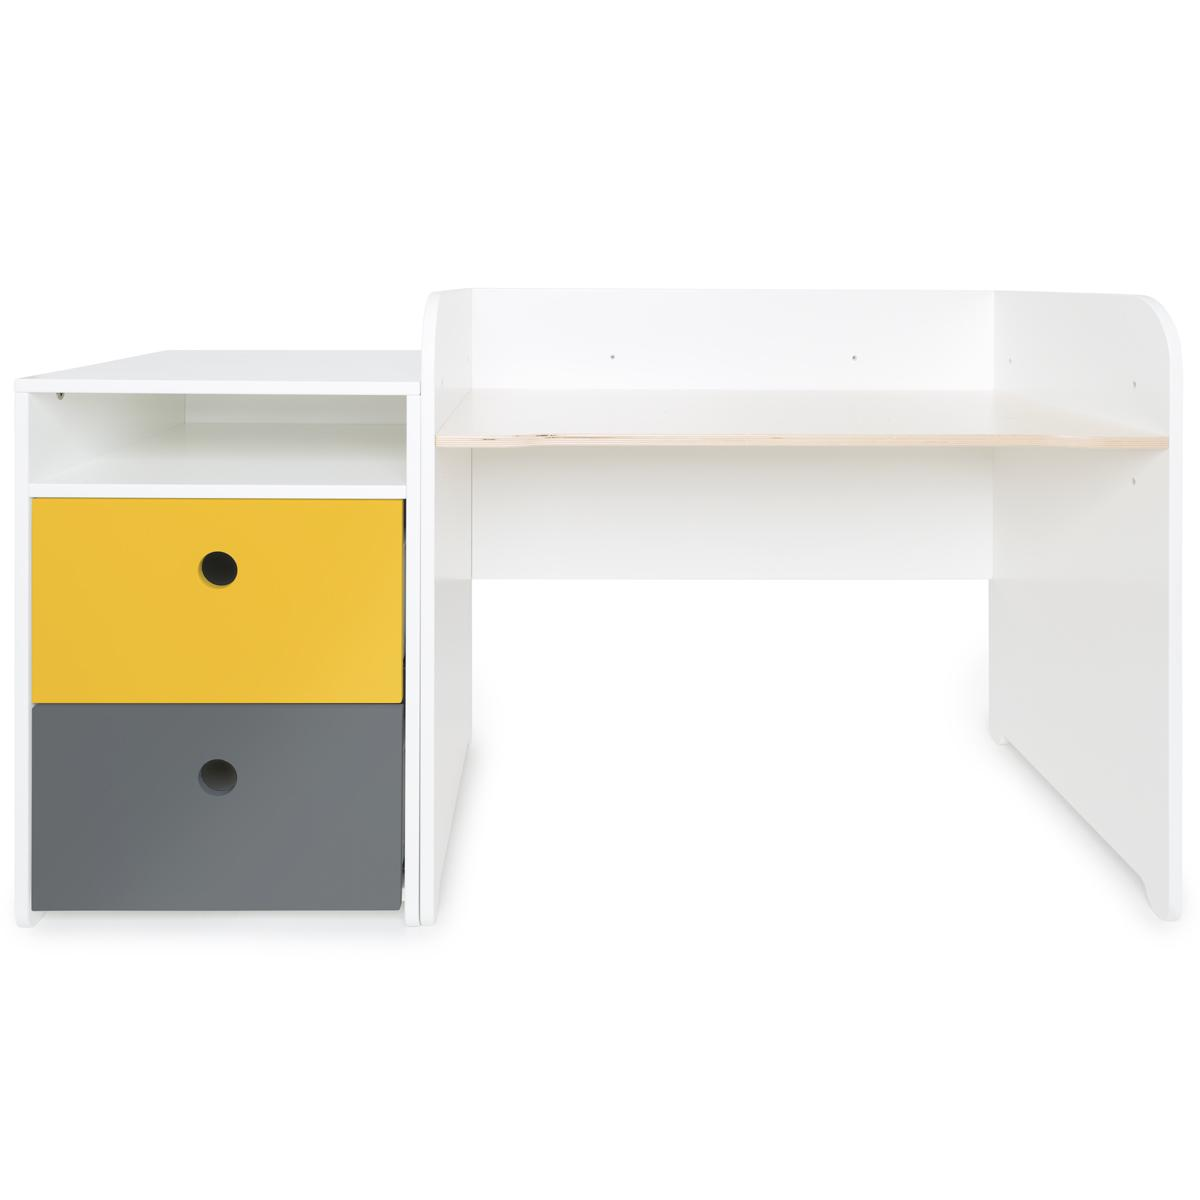 Bureau évolutif-petit meuble 2 tiroirs COLORFLEX Abitare Kids nectar yellow-space grey